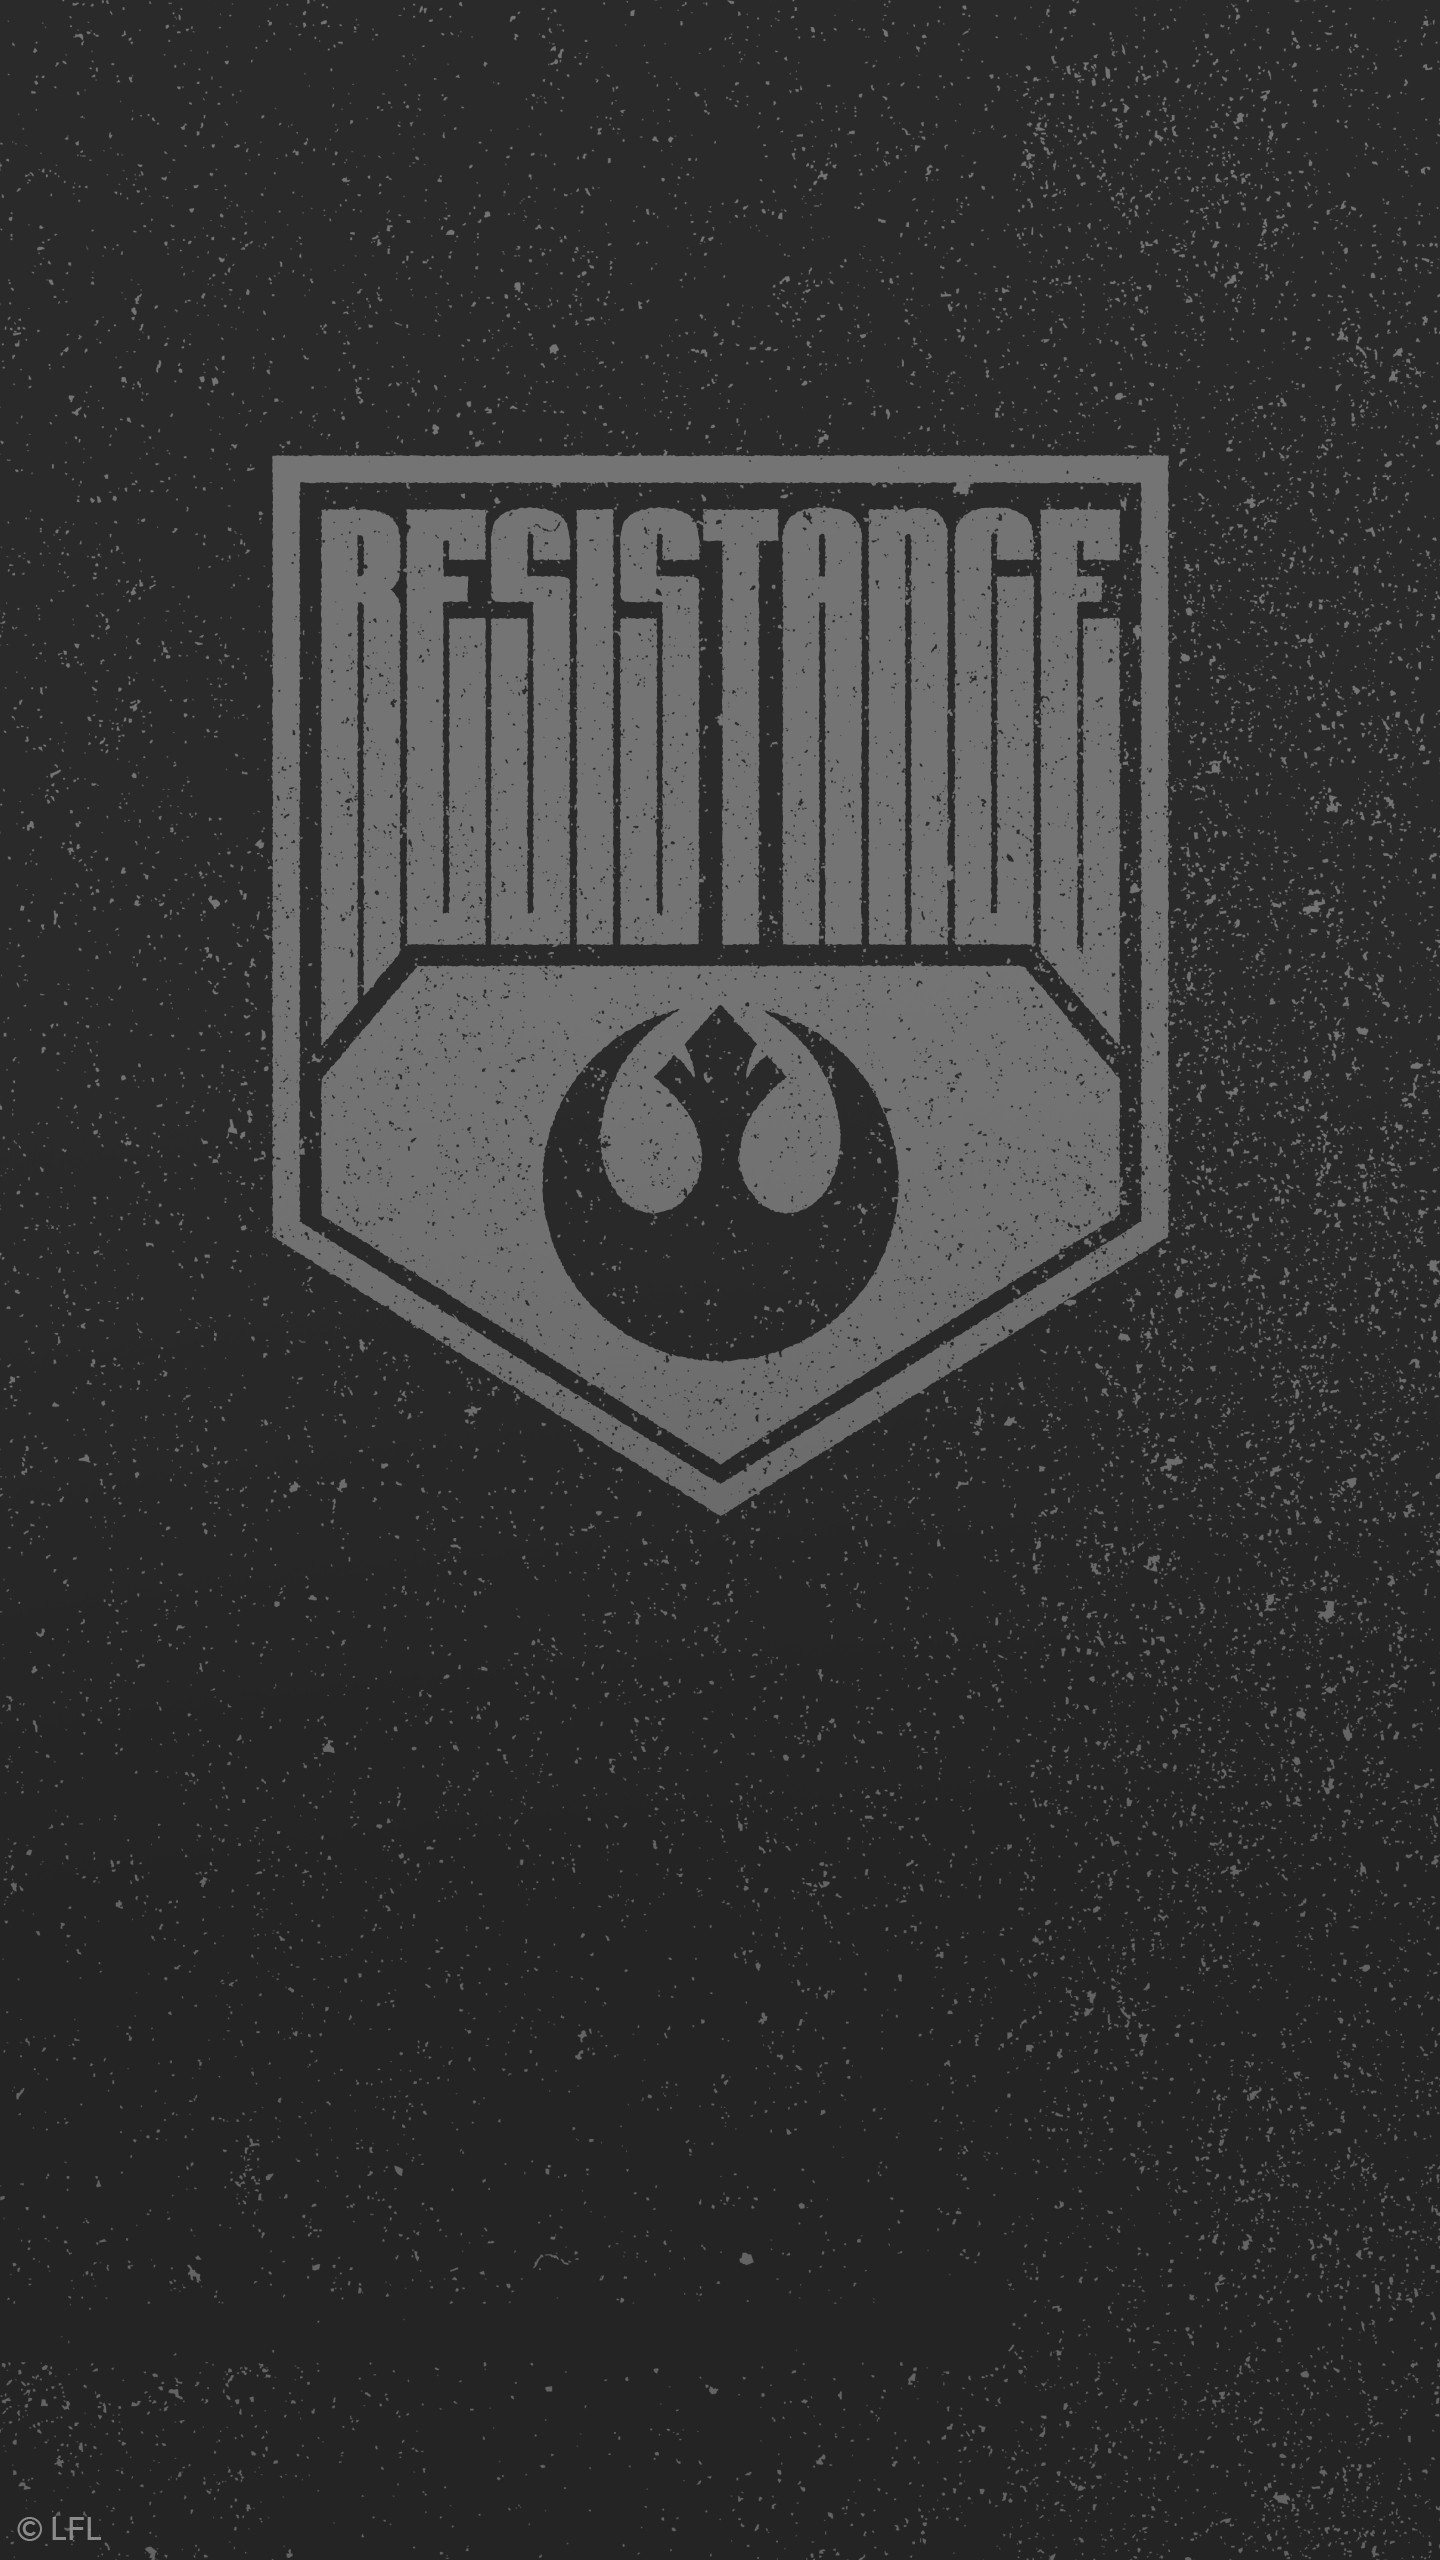 Star Wars The Force Awakens Wallpaper